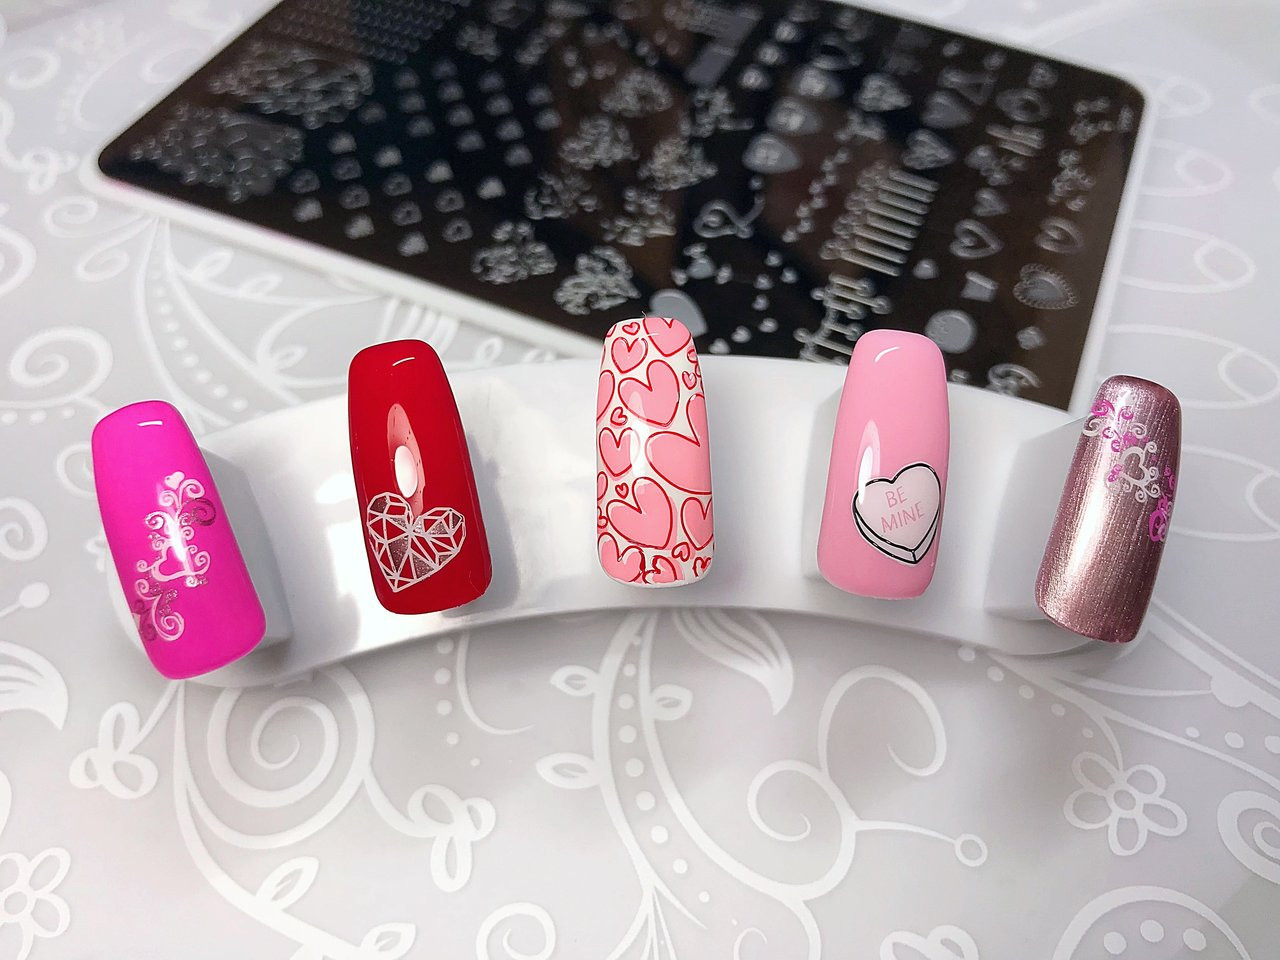 Show the Love nail stamping plate by Clear Jelly Stamper. Available in the USA at www.lanternandwren.com